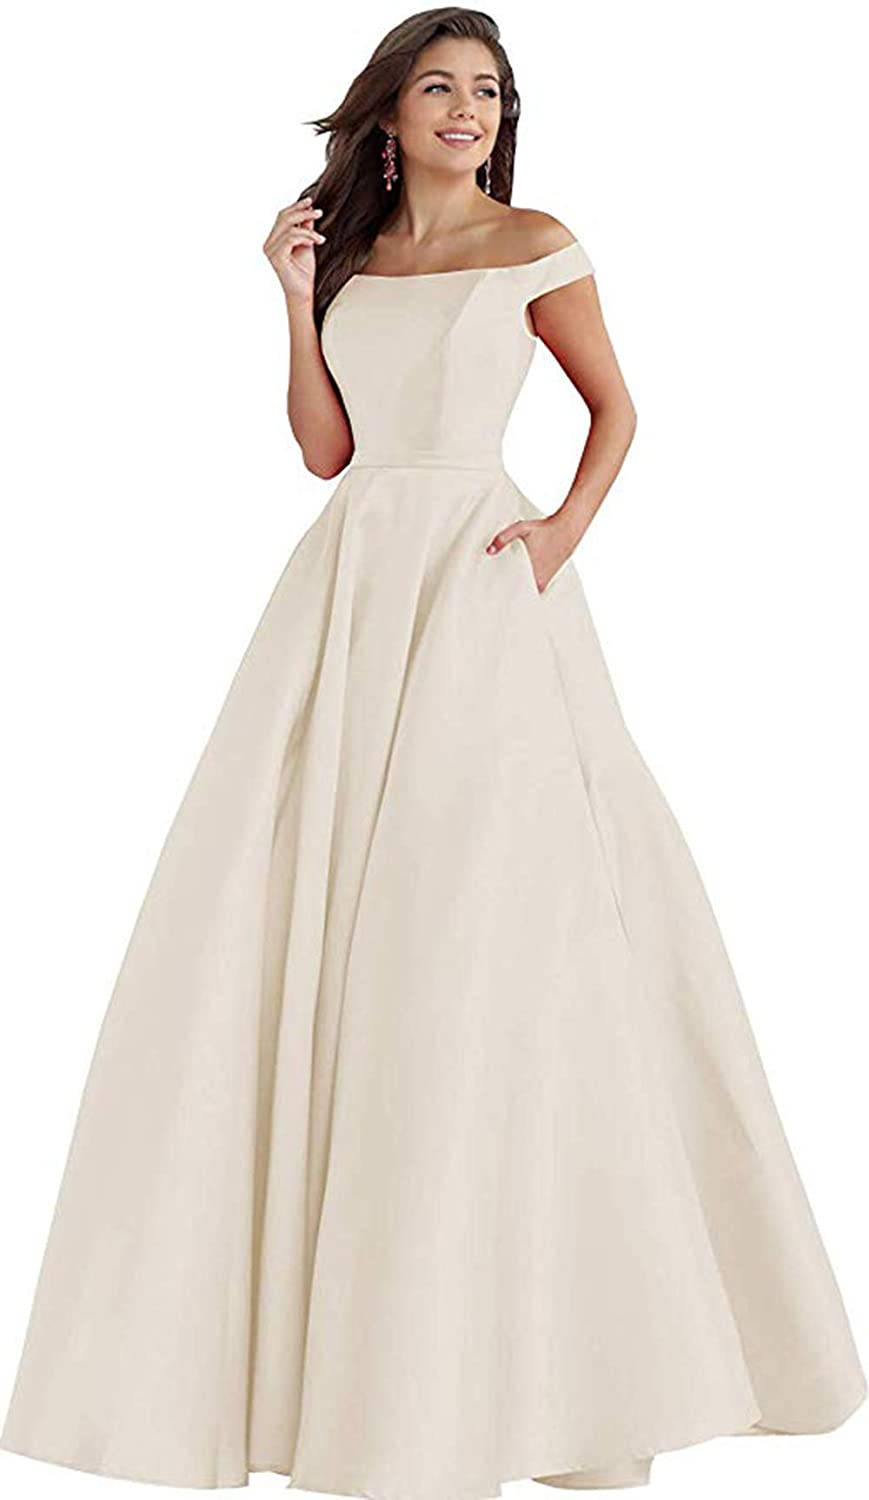 Champagne Rmaytiked Womens Off The Shoulder Long Prom Dresses Satin A Line Formal Evening Ball Gowns with Pockets 2019 New